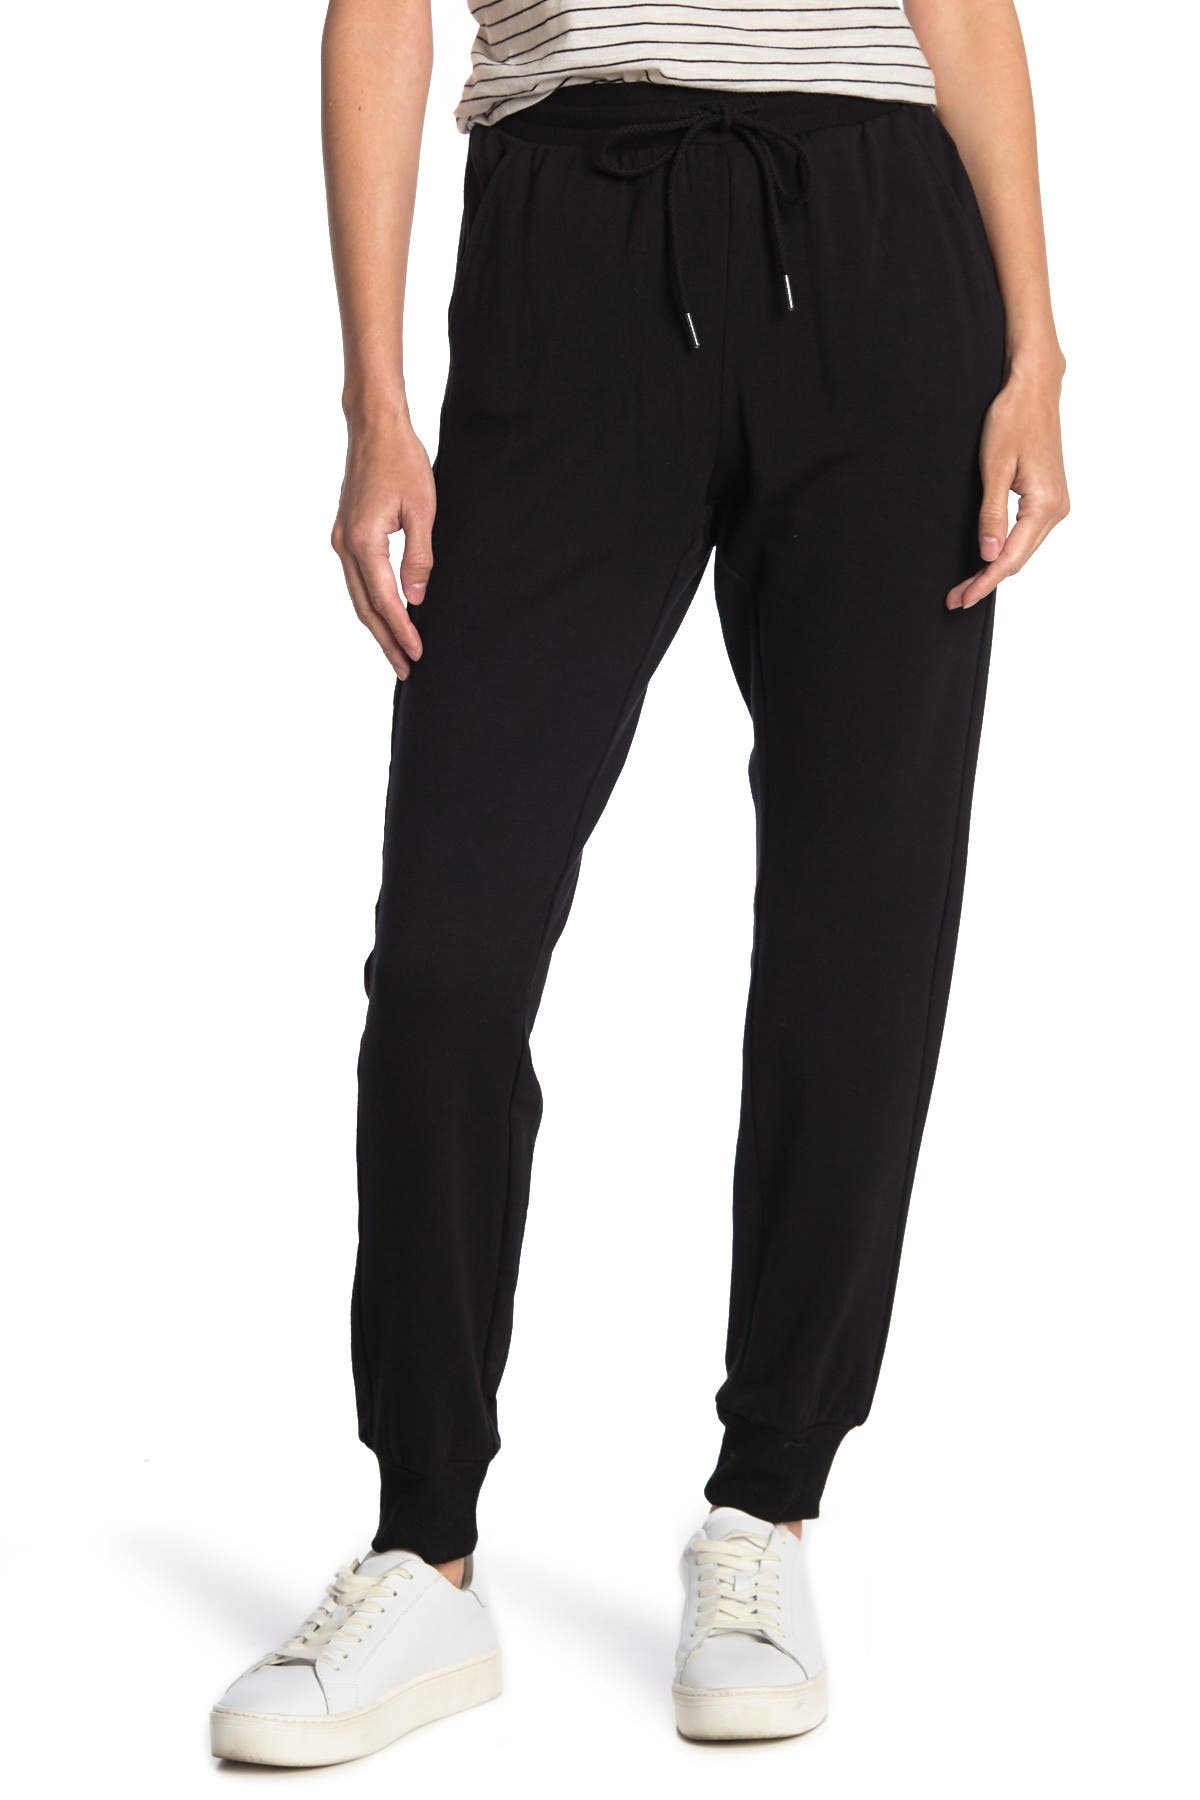 Image of MELLODAY Drawcord Knit Joggers